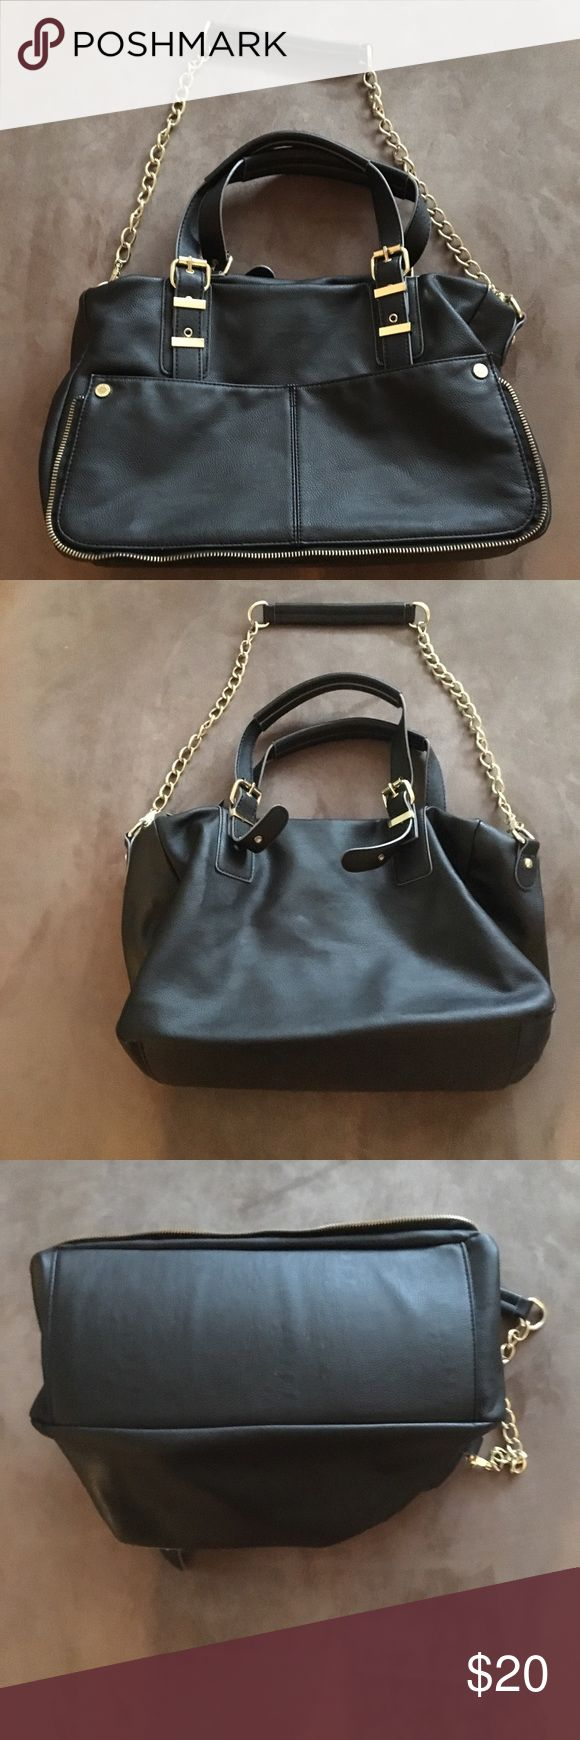 Black Steve Madden Bag Black bag with gold chains and zipper detail. I'm great condition. Like new! Steve Madden Bags Shoulder Bags